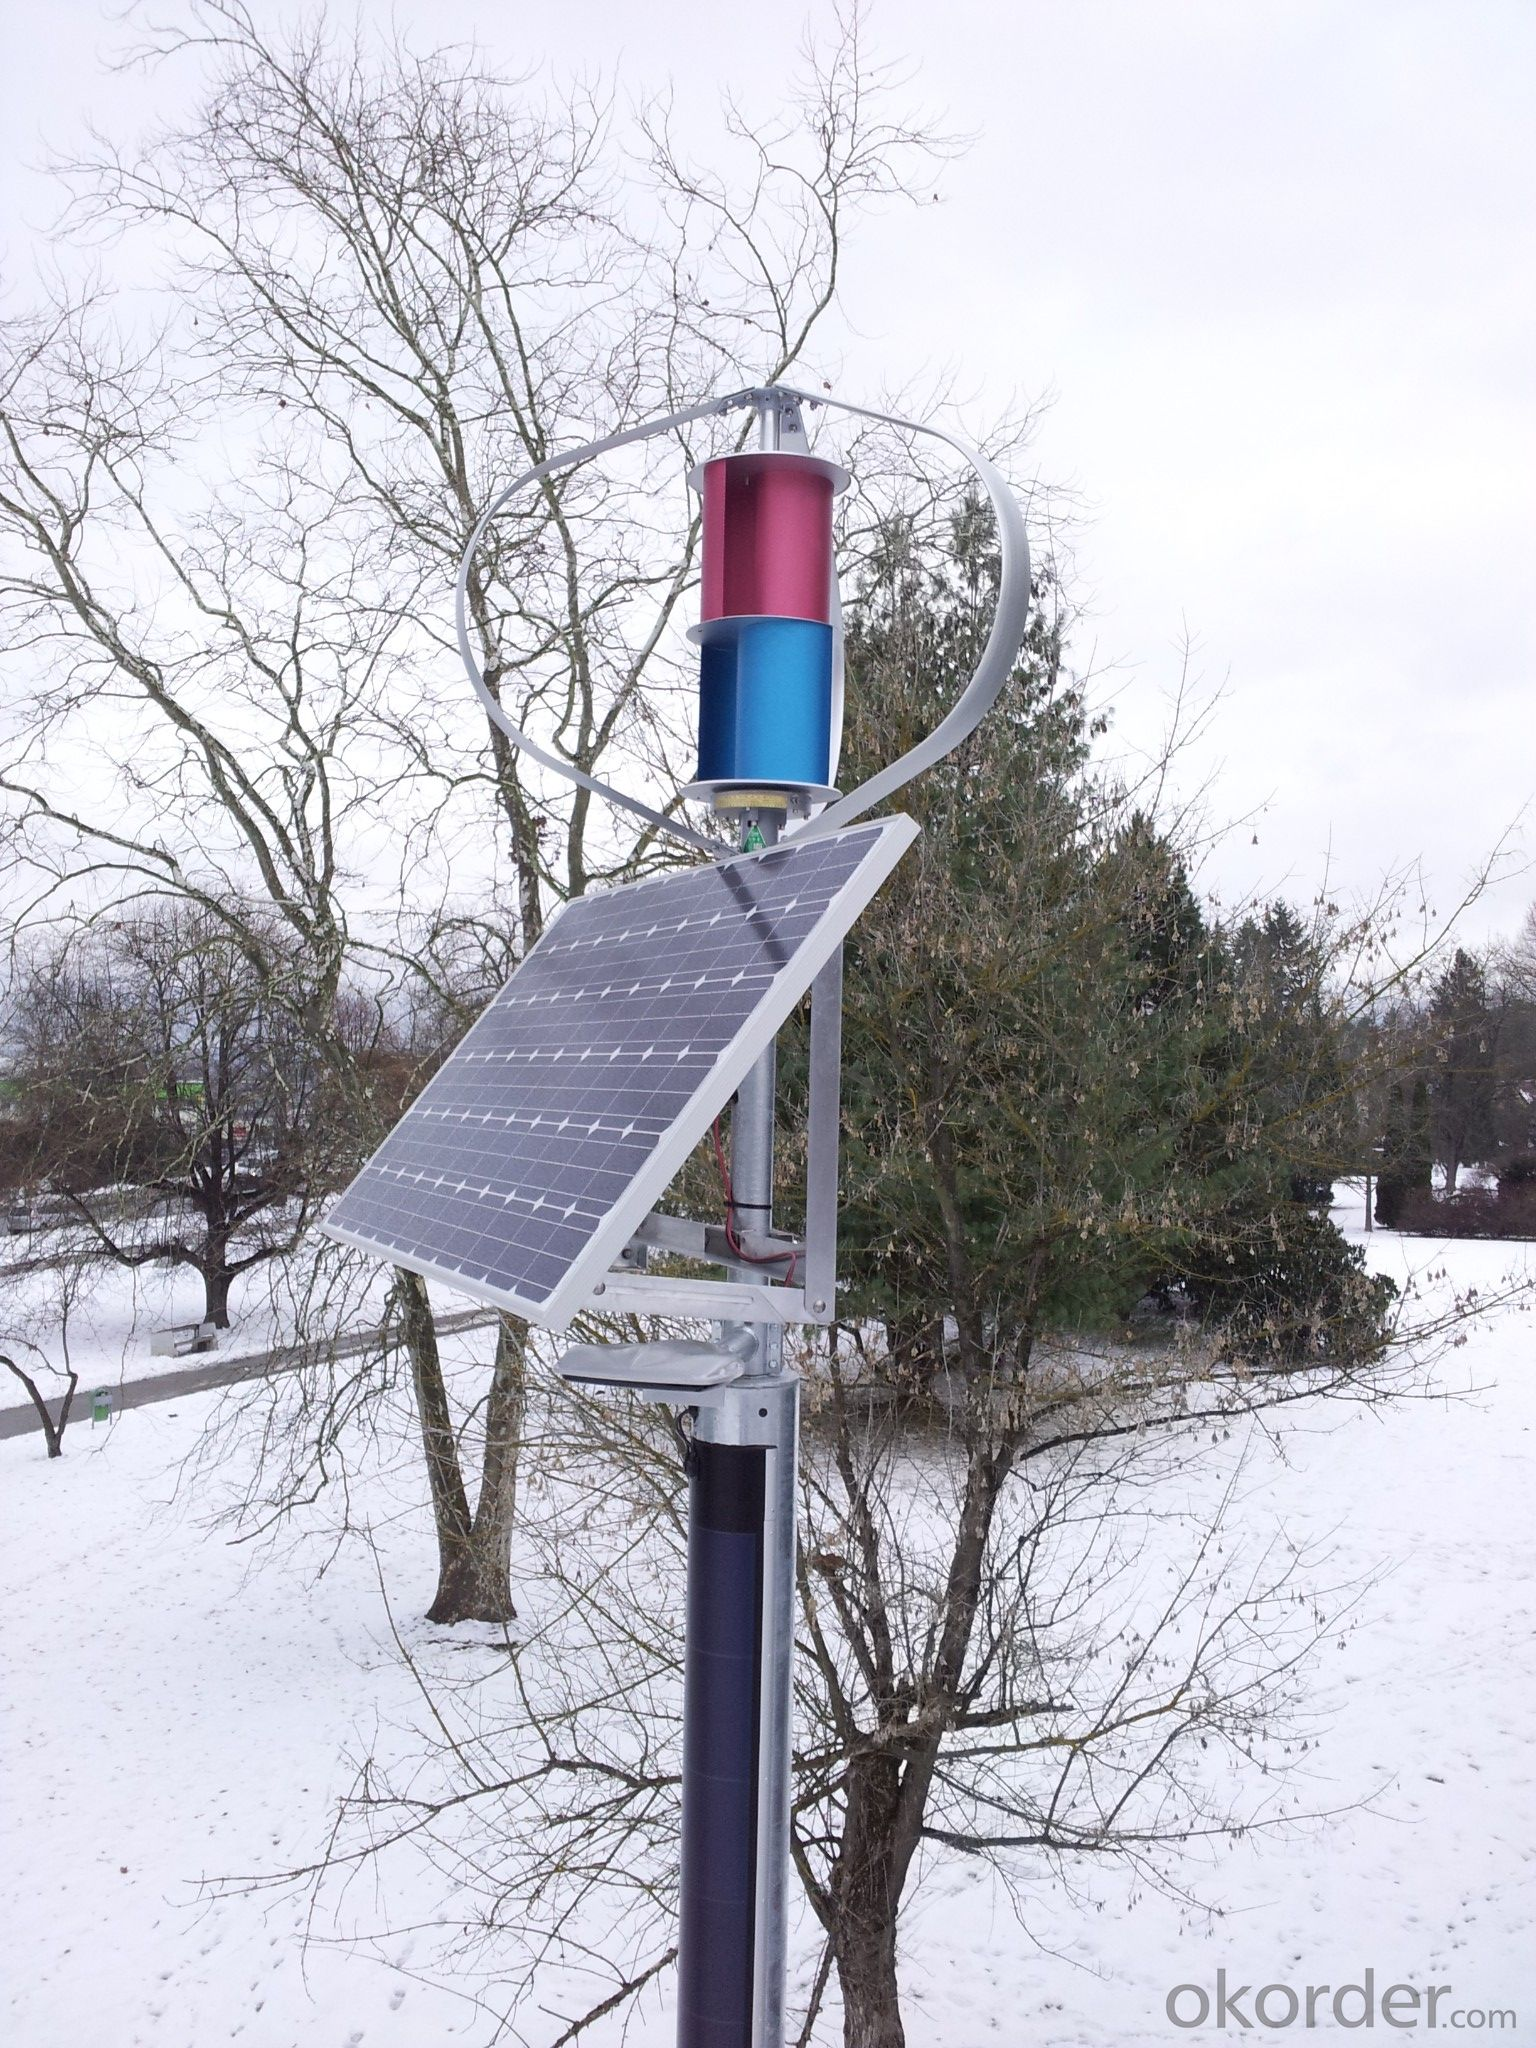 Wind-Solar Hybrid LED Street Light with 60W Lamp